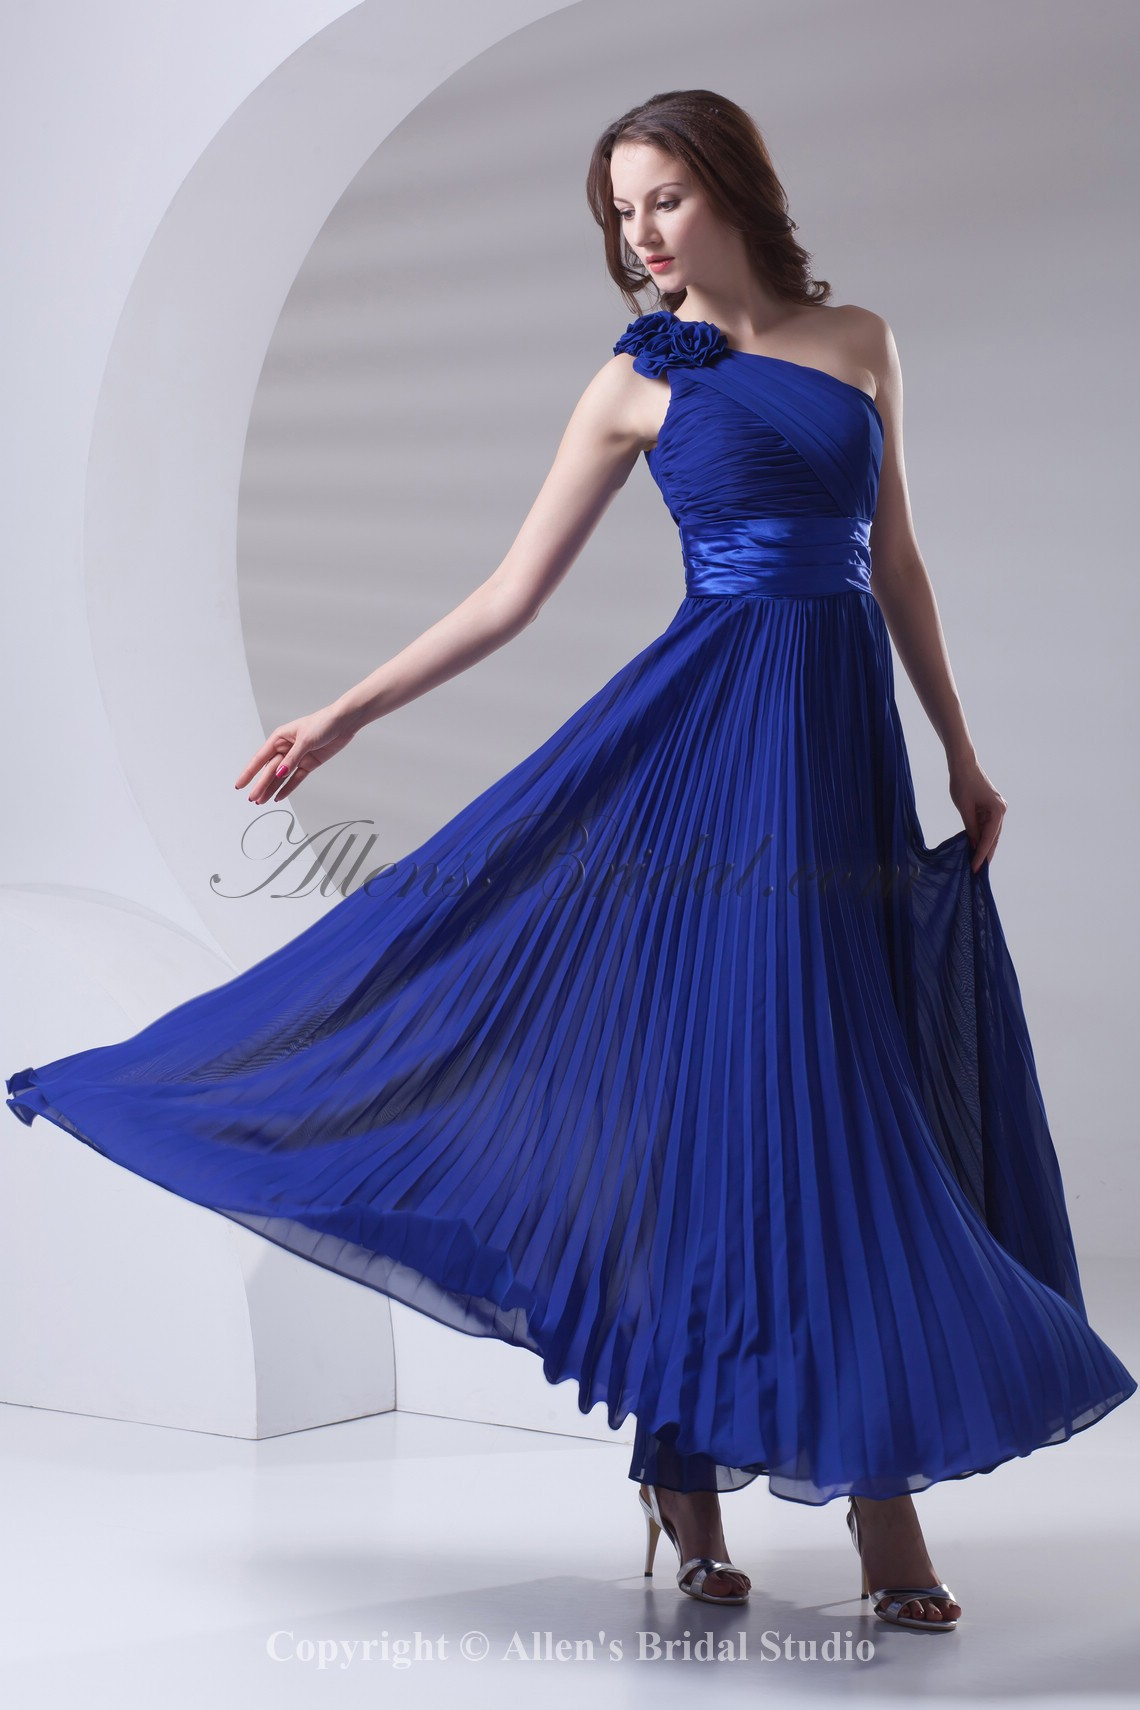 /421-3364/chiffon-asymmetrical-neckline-column-ankle-length-flowers-prom-dress.jpg